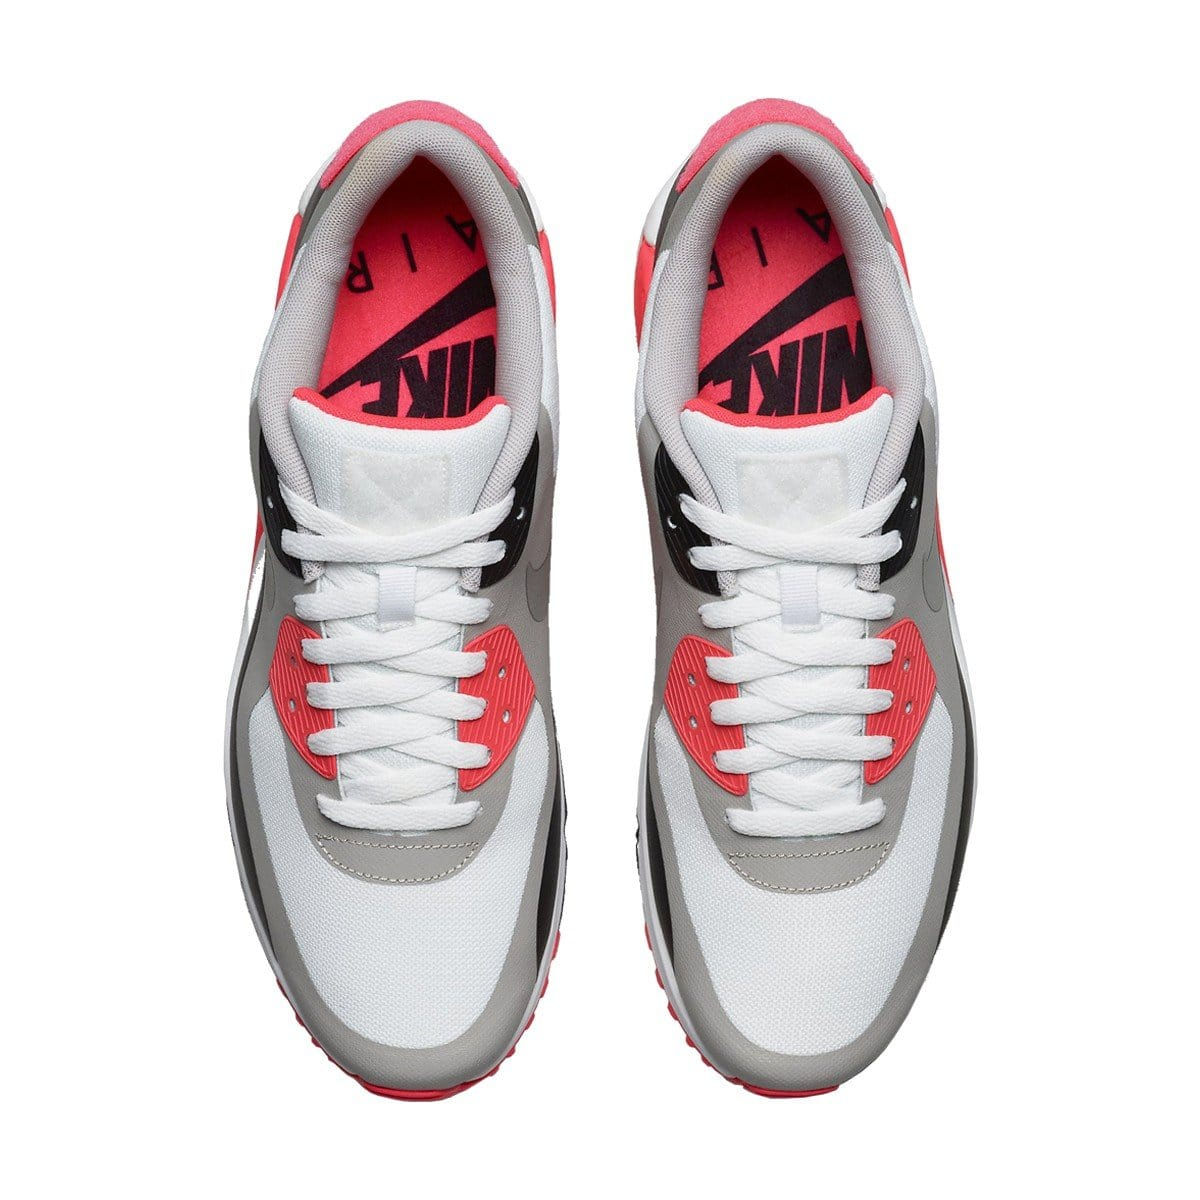 "Nike Air Max 90 V SP ""Patch"" White - Cool Grey - Infrared Red - Kick Game"